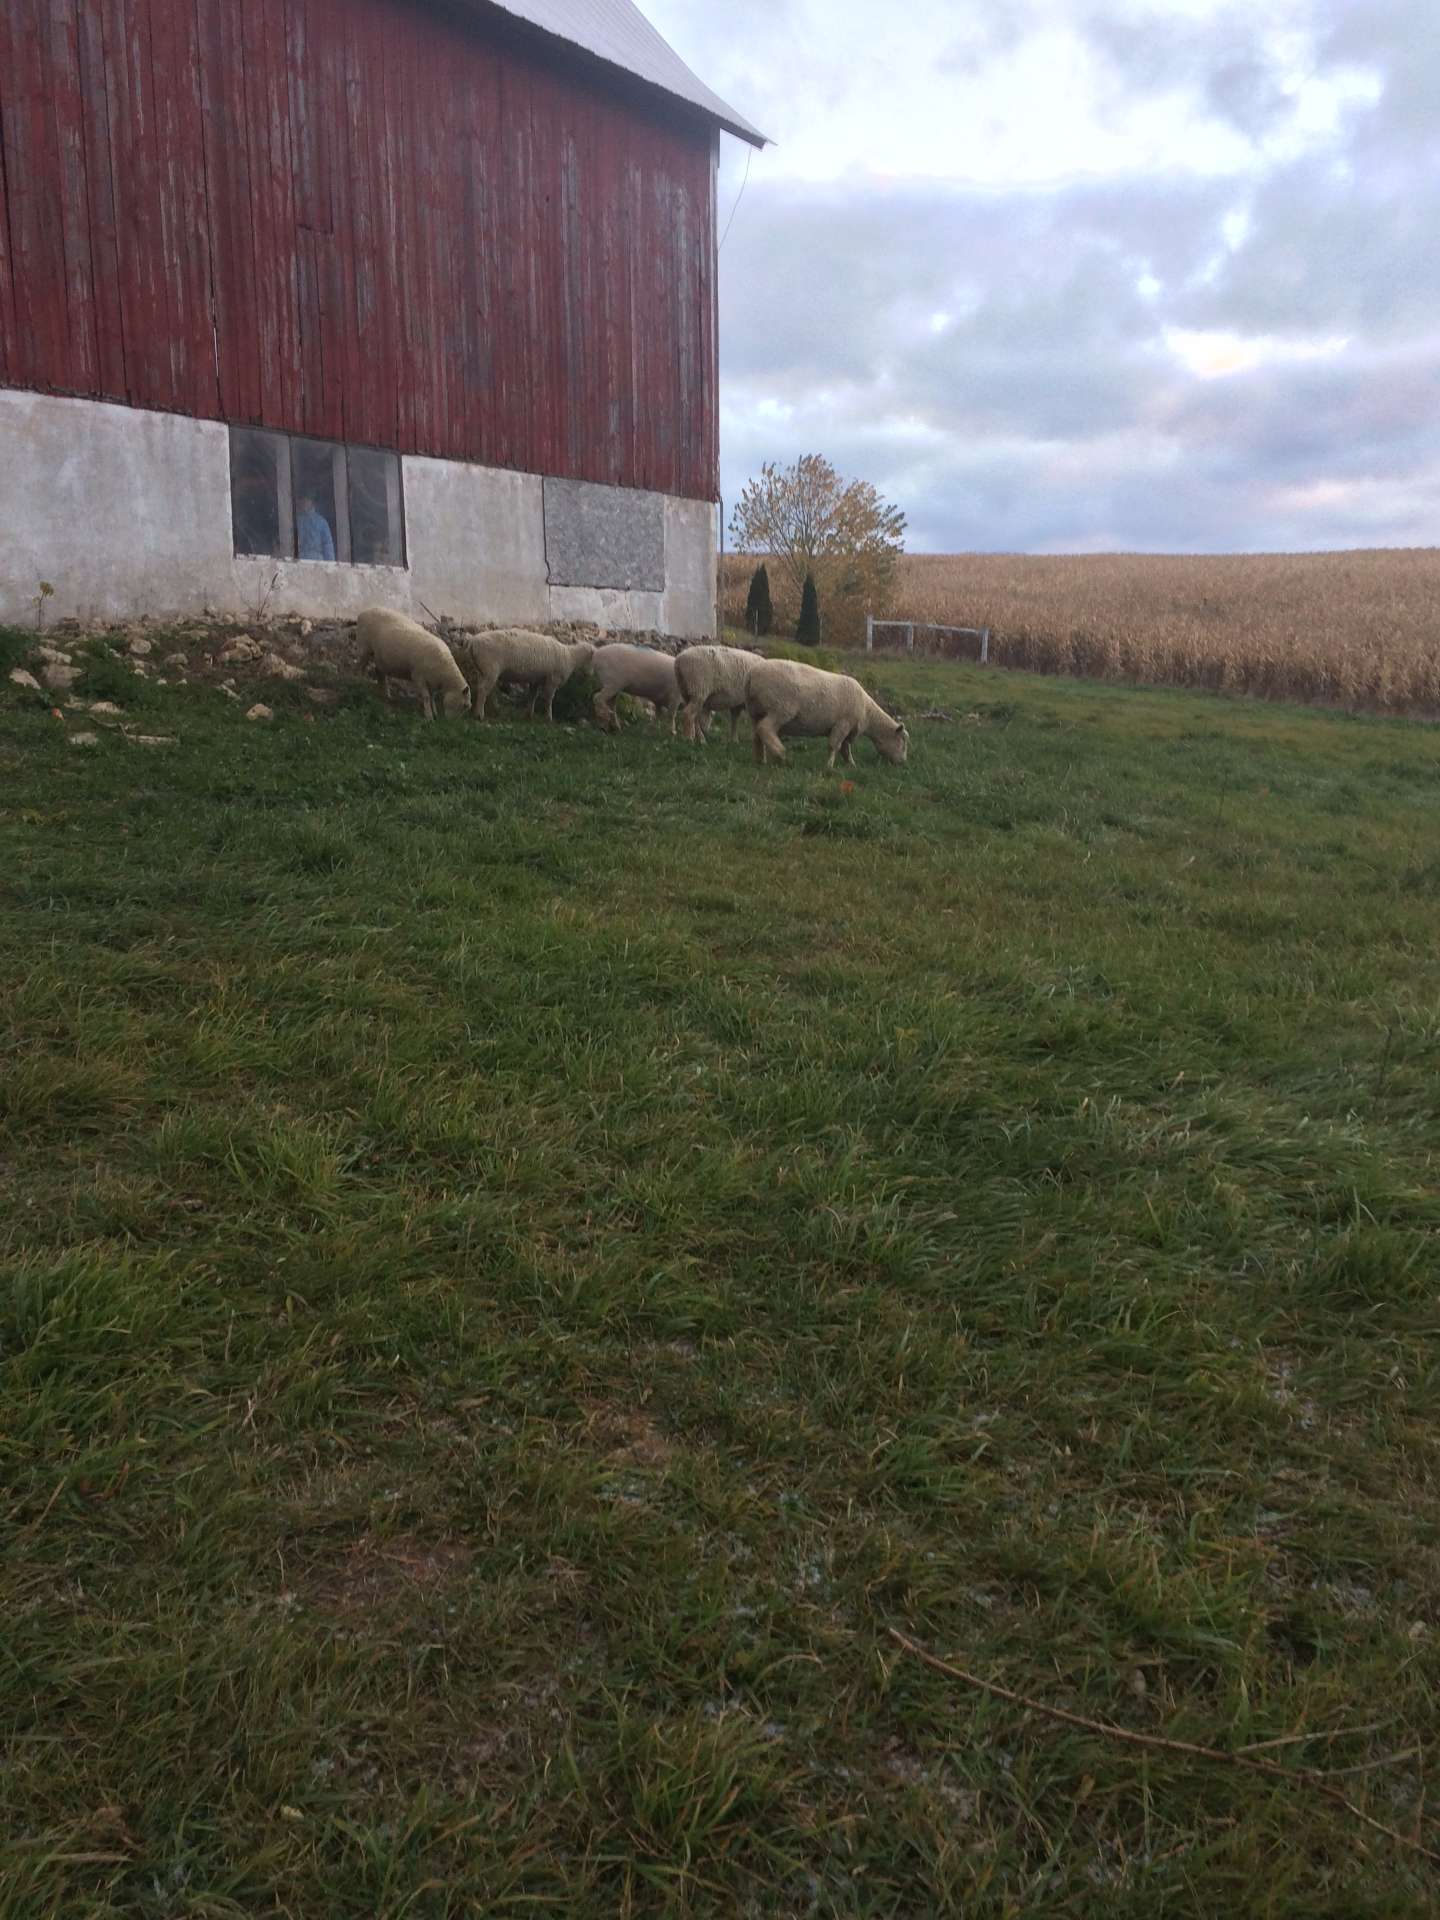 Ewes in yard